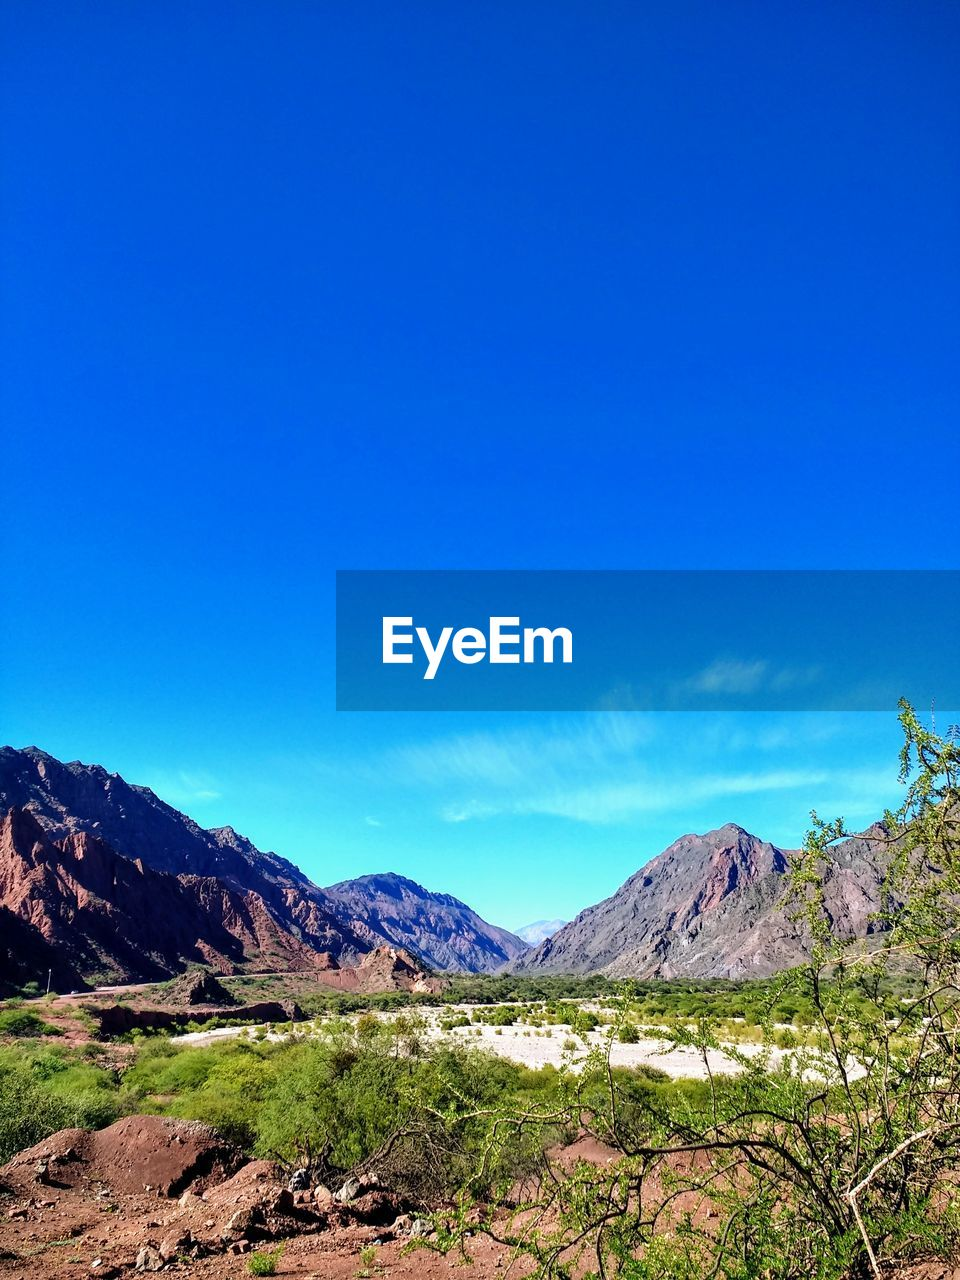 mountain, scenics - nature, sky, beauty in nature, blue, tranquility, tranquil scene, copy space, landscape, environment, non-urban scene, mountain range, idyllic, nature, clear sky, no people, day, remote, land, sunlight, mountain peak